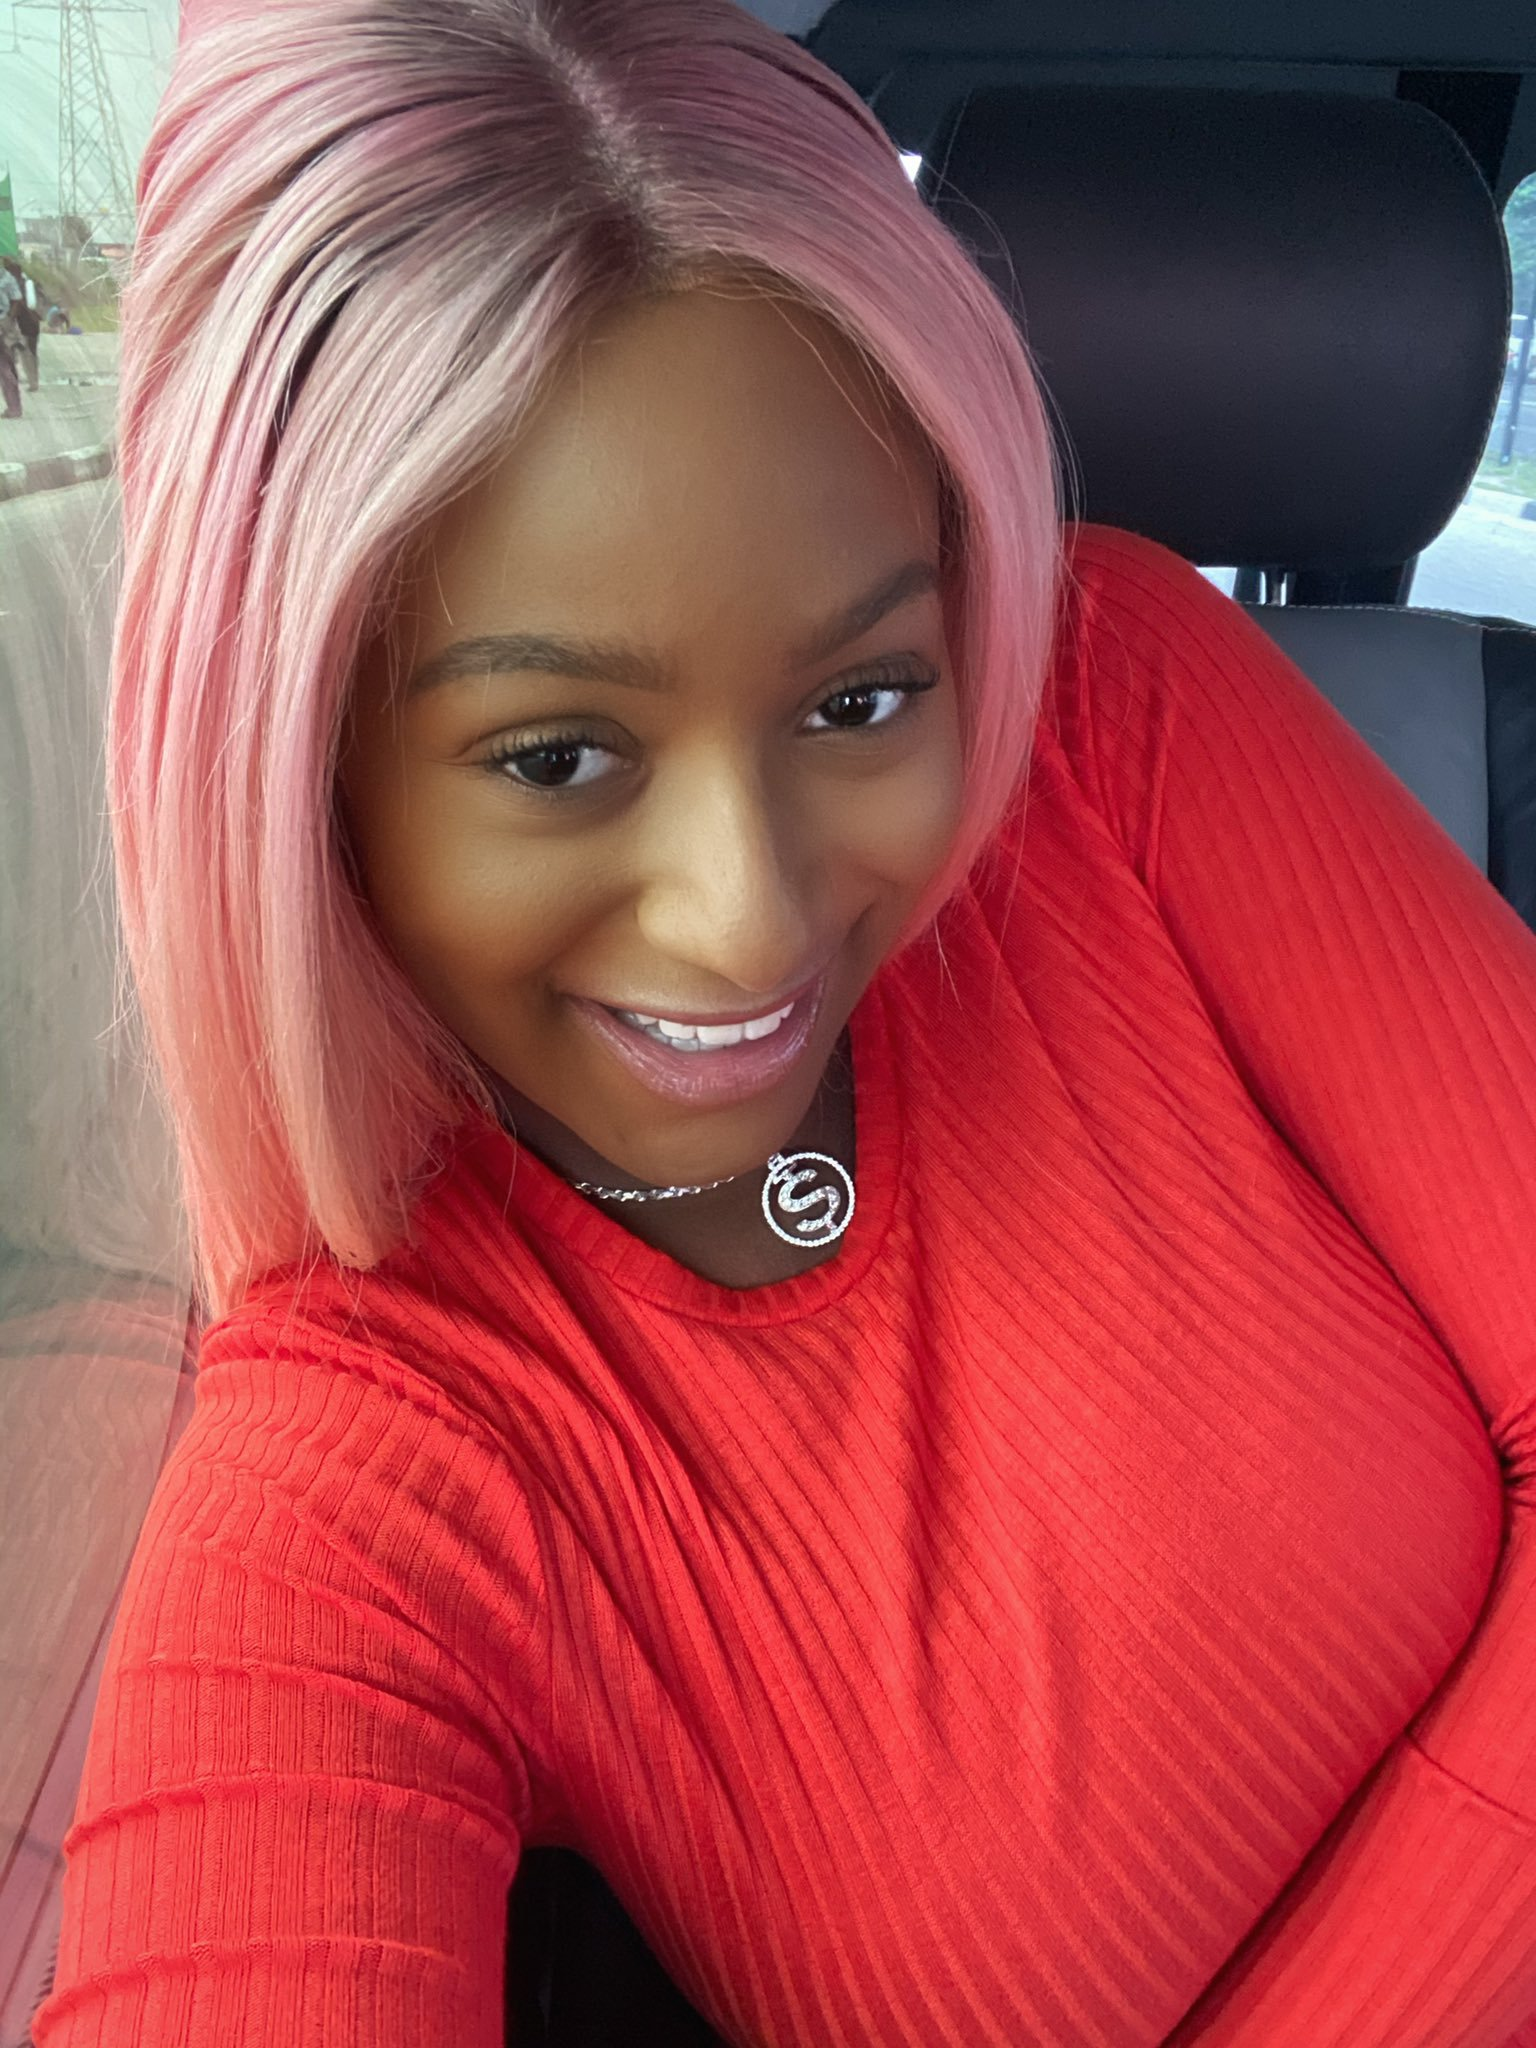 DJ Cuppy sparks dating rumors as she gushes over customized diamond necklace Anthony Joshua gifted her (Photos)